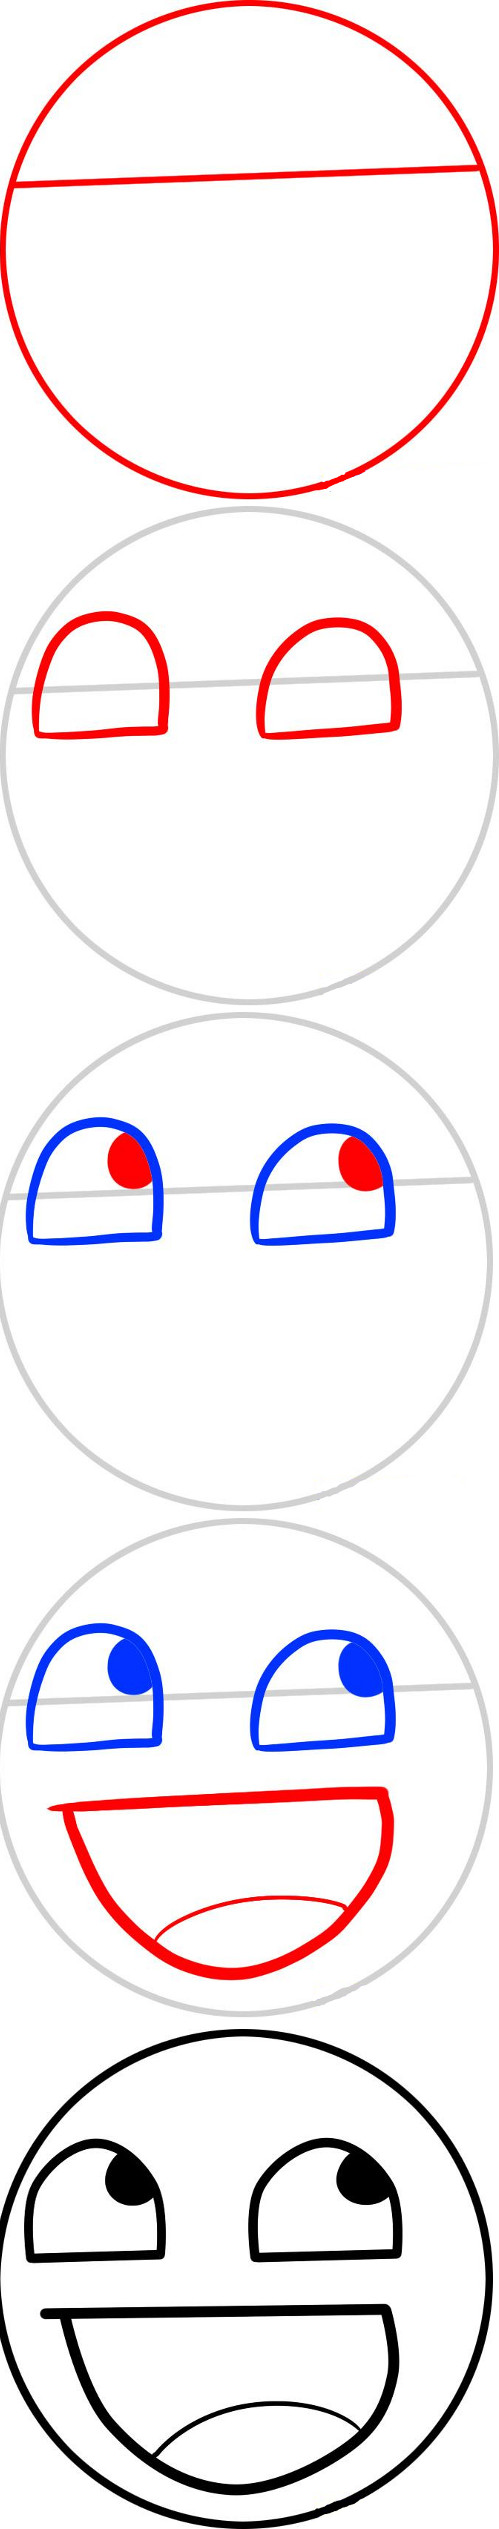 How to draw a smiley